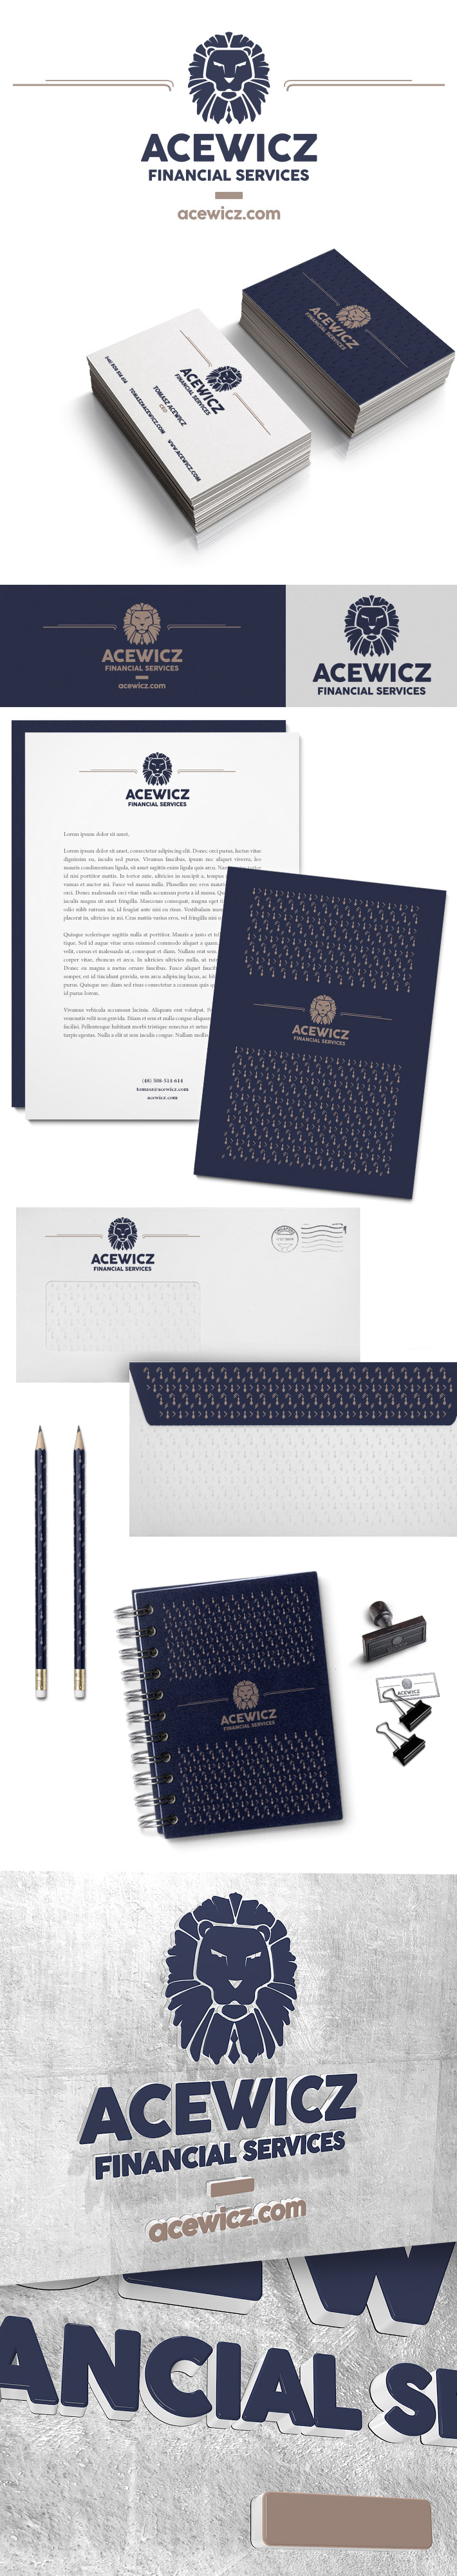 Corporate Identity Acewicz